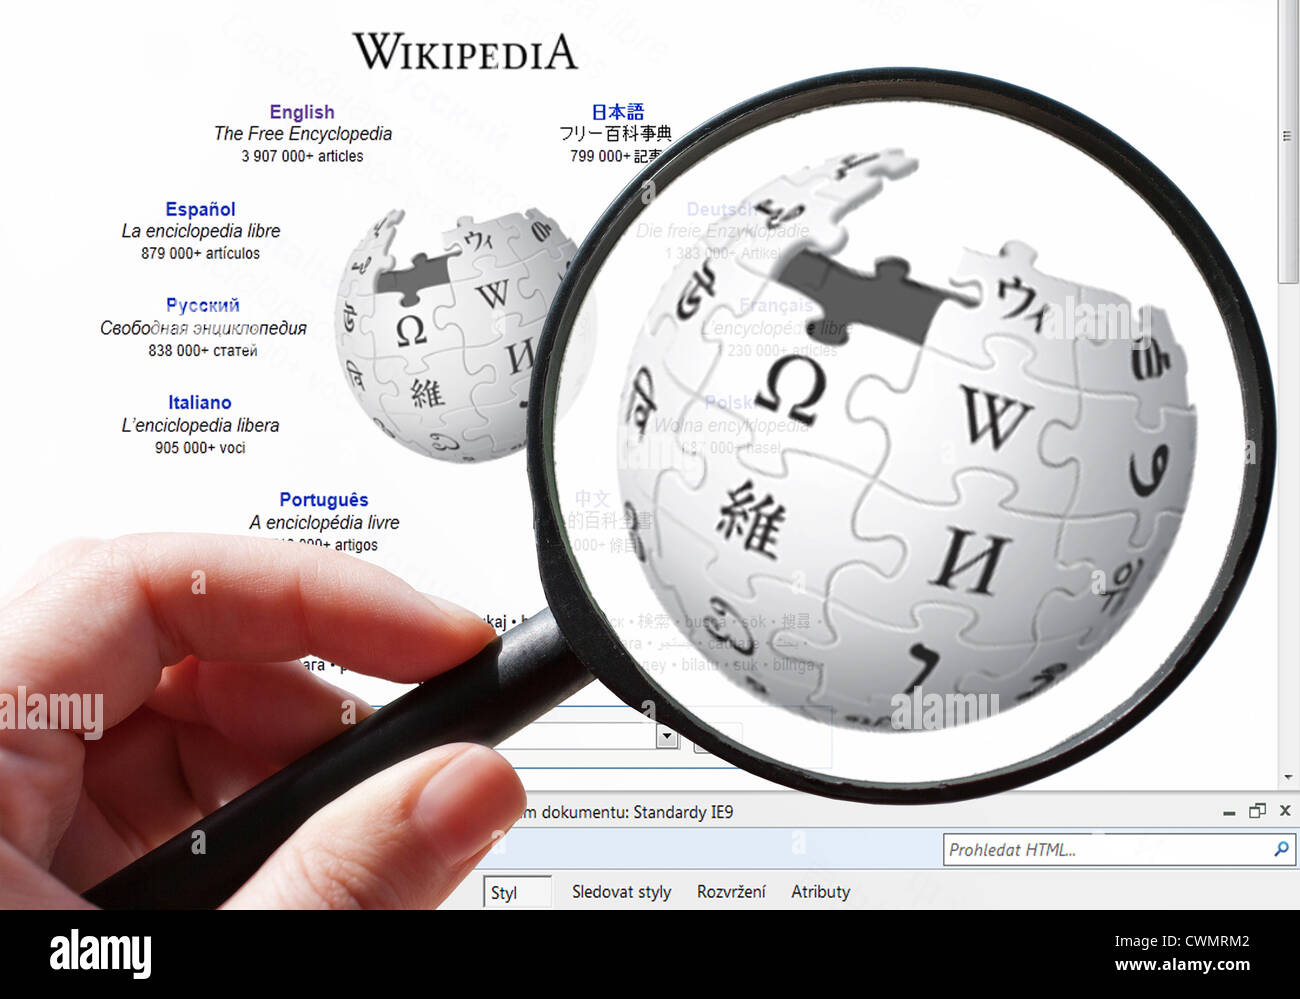 Czech Internet Search In Encyclopedia Wikipedia Stock Photo - Wikipedia royalty free images